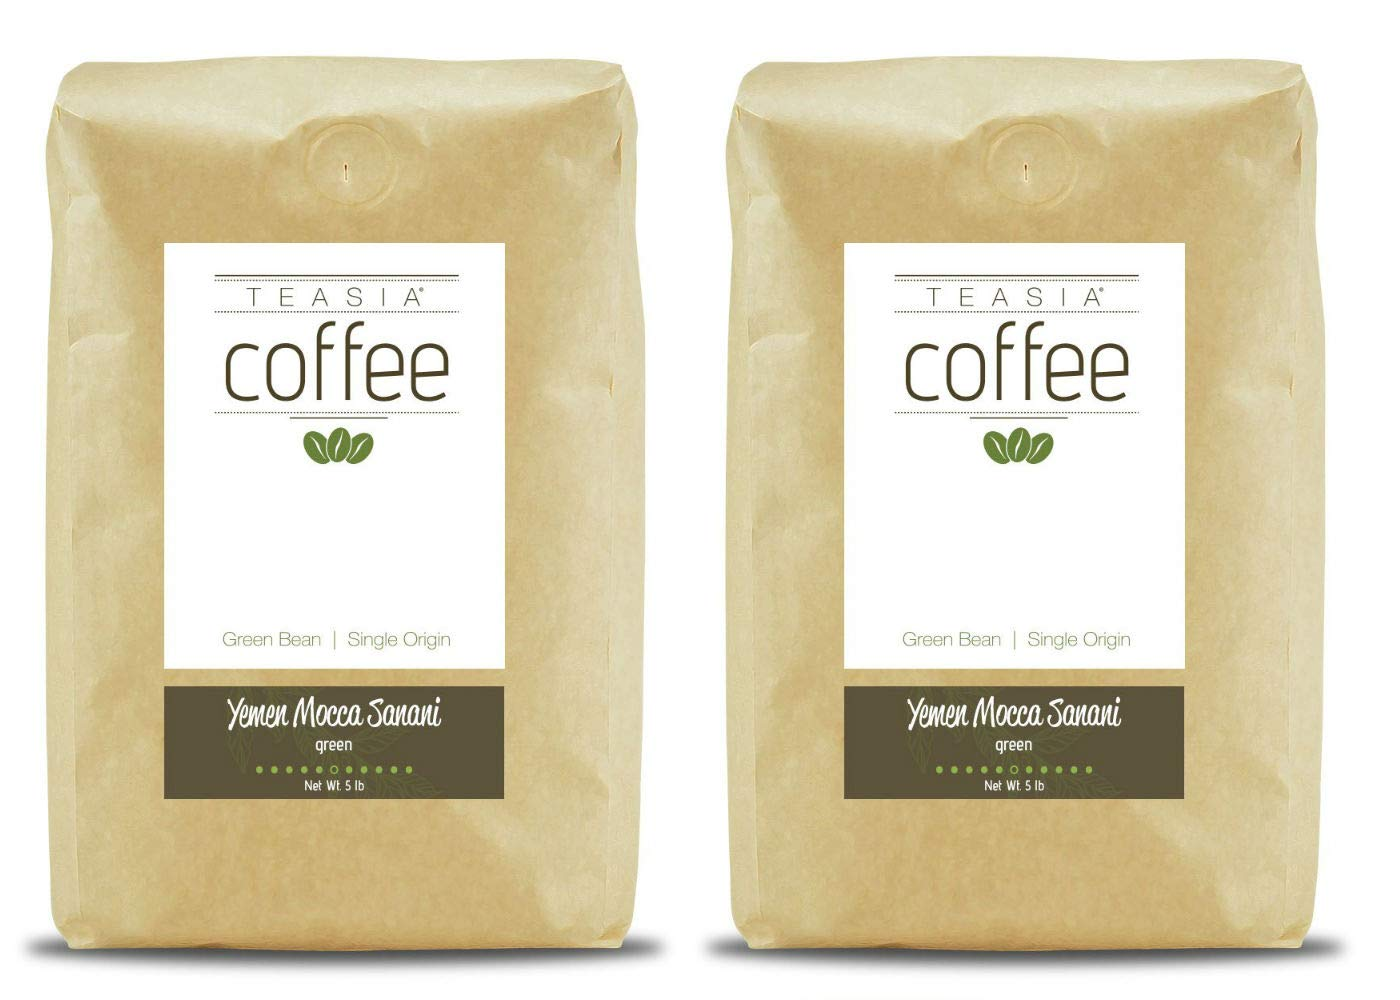 Teasia Coffee, Yemen Mocca Sanani, 2-Pack, Single Origin Fair Trade, Green Unroasted Whole Coffee Beans, 5-Pound Bag